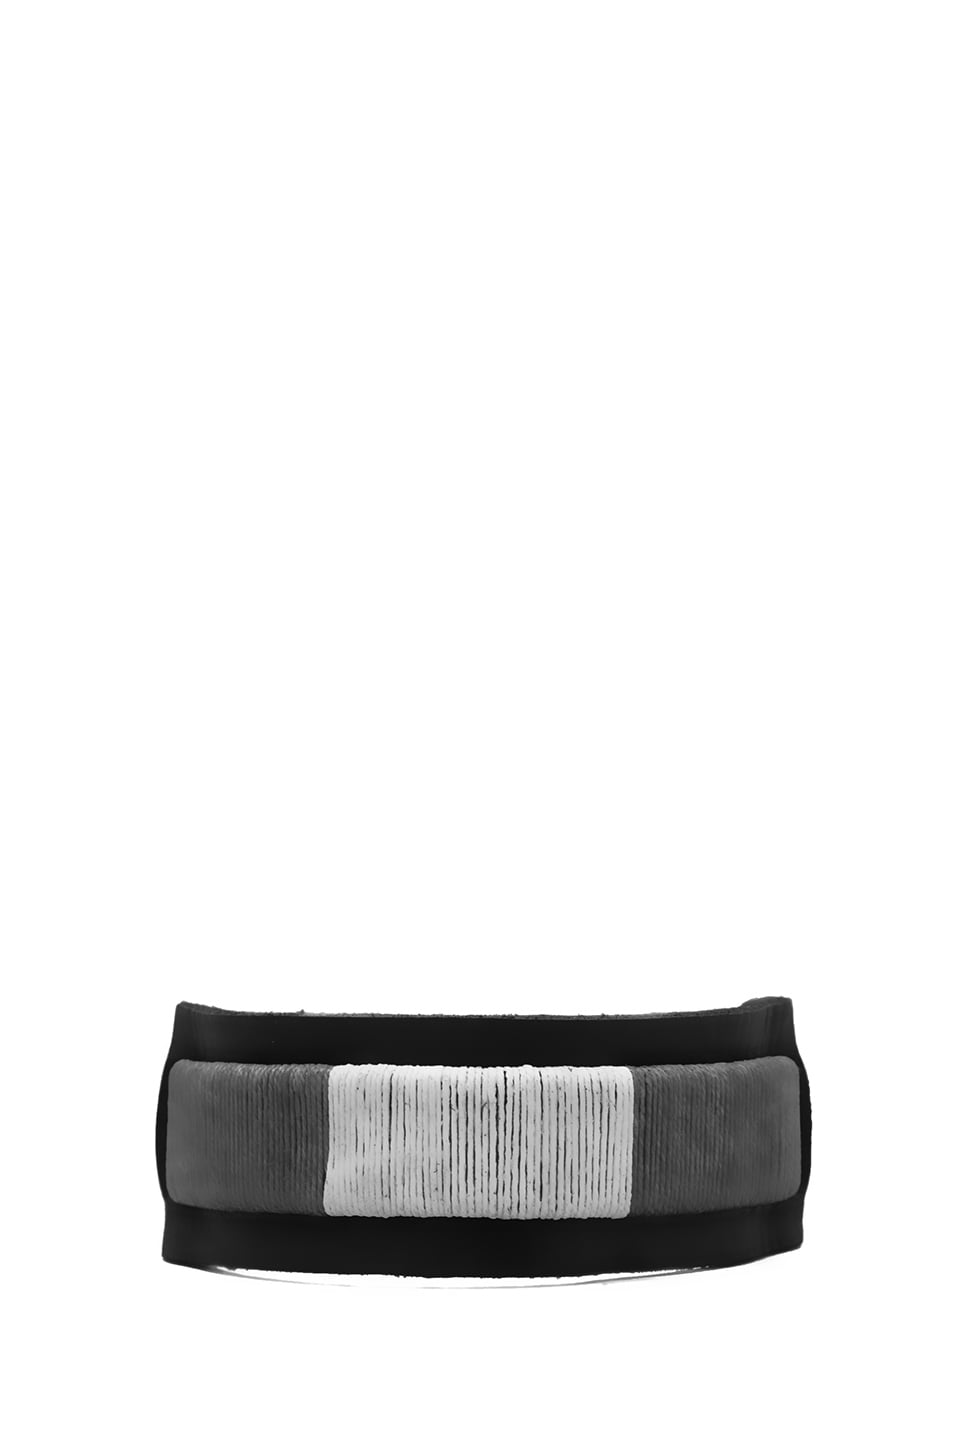 griffin Colton Cuff in Black/Grey